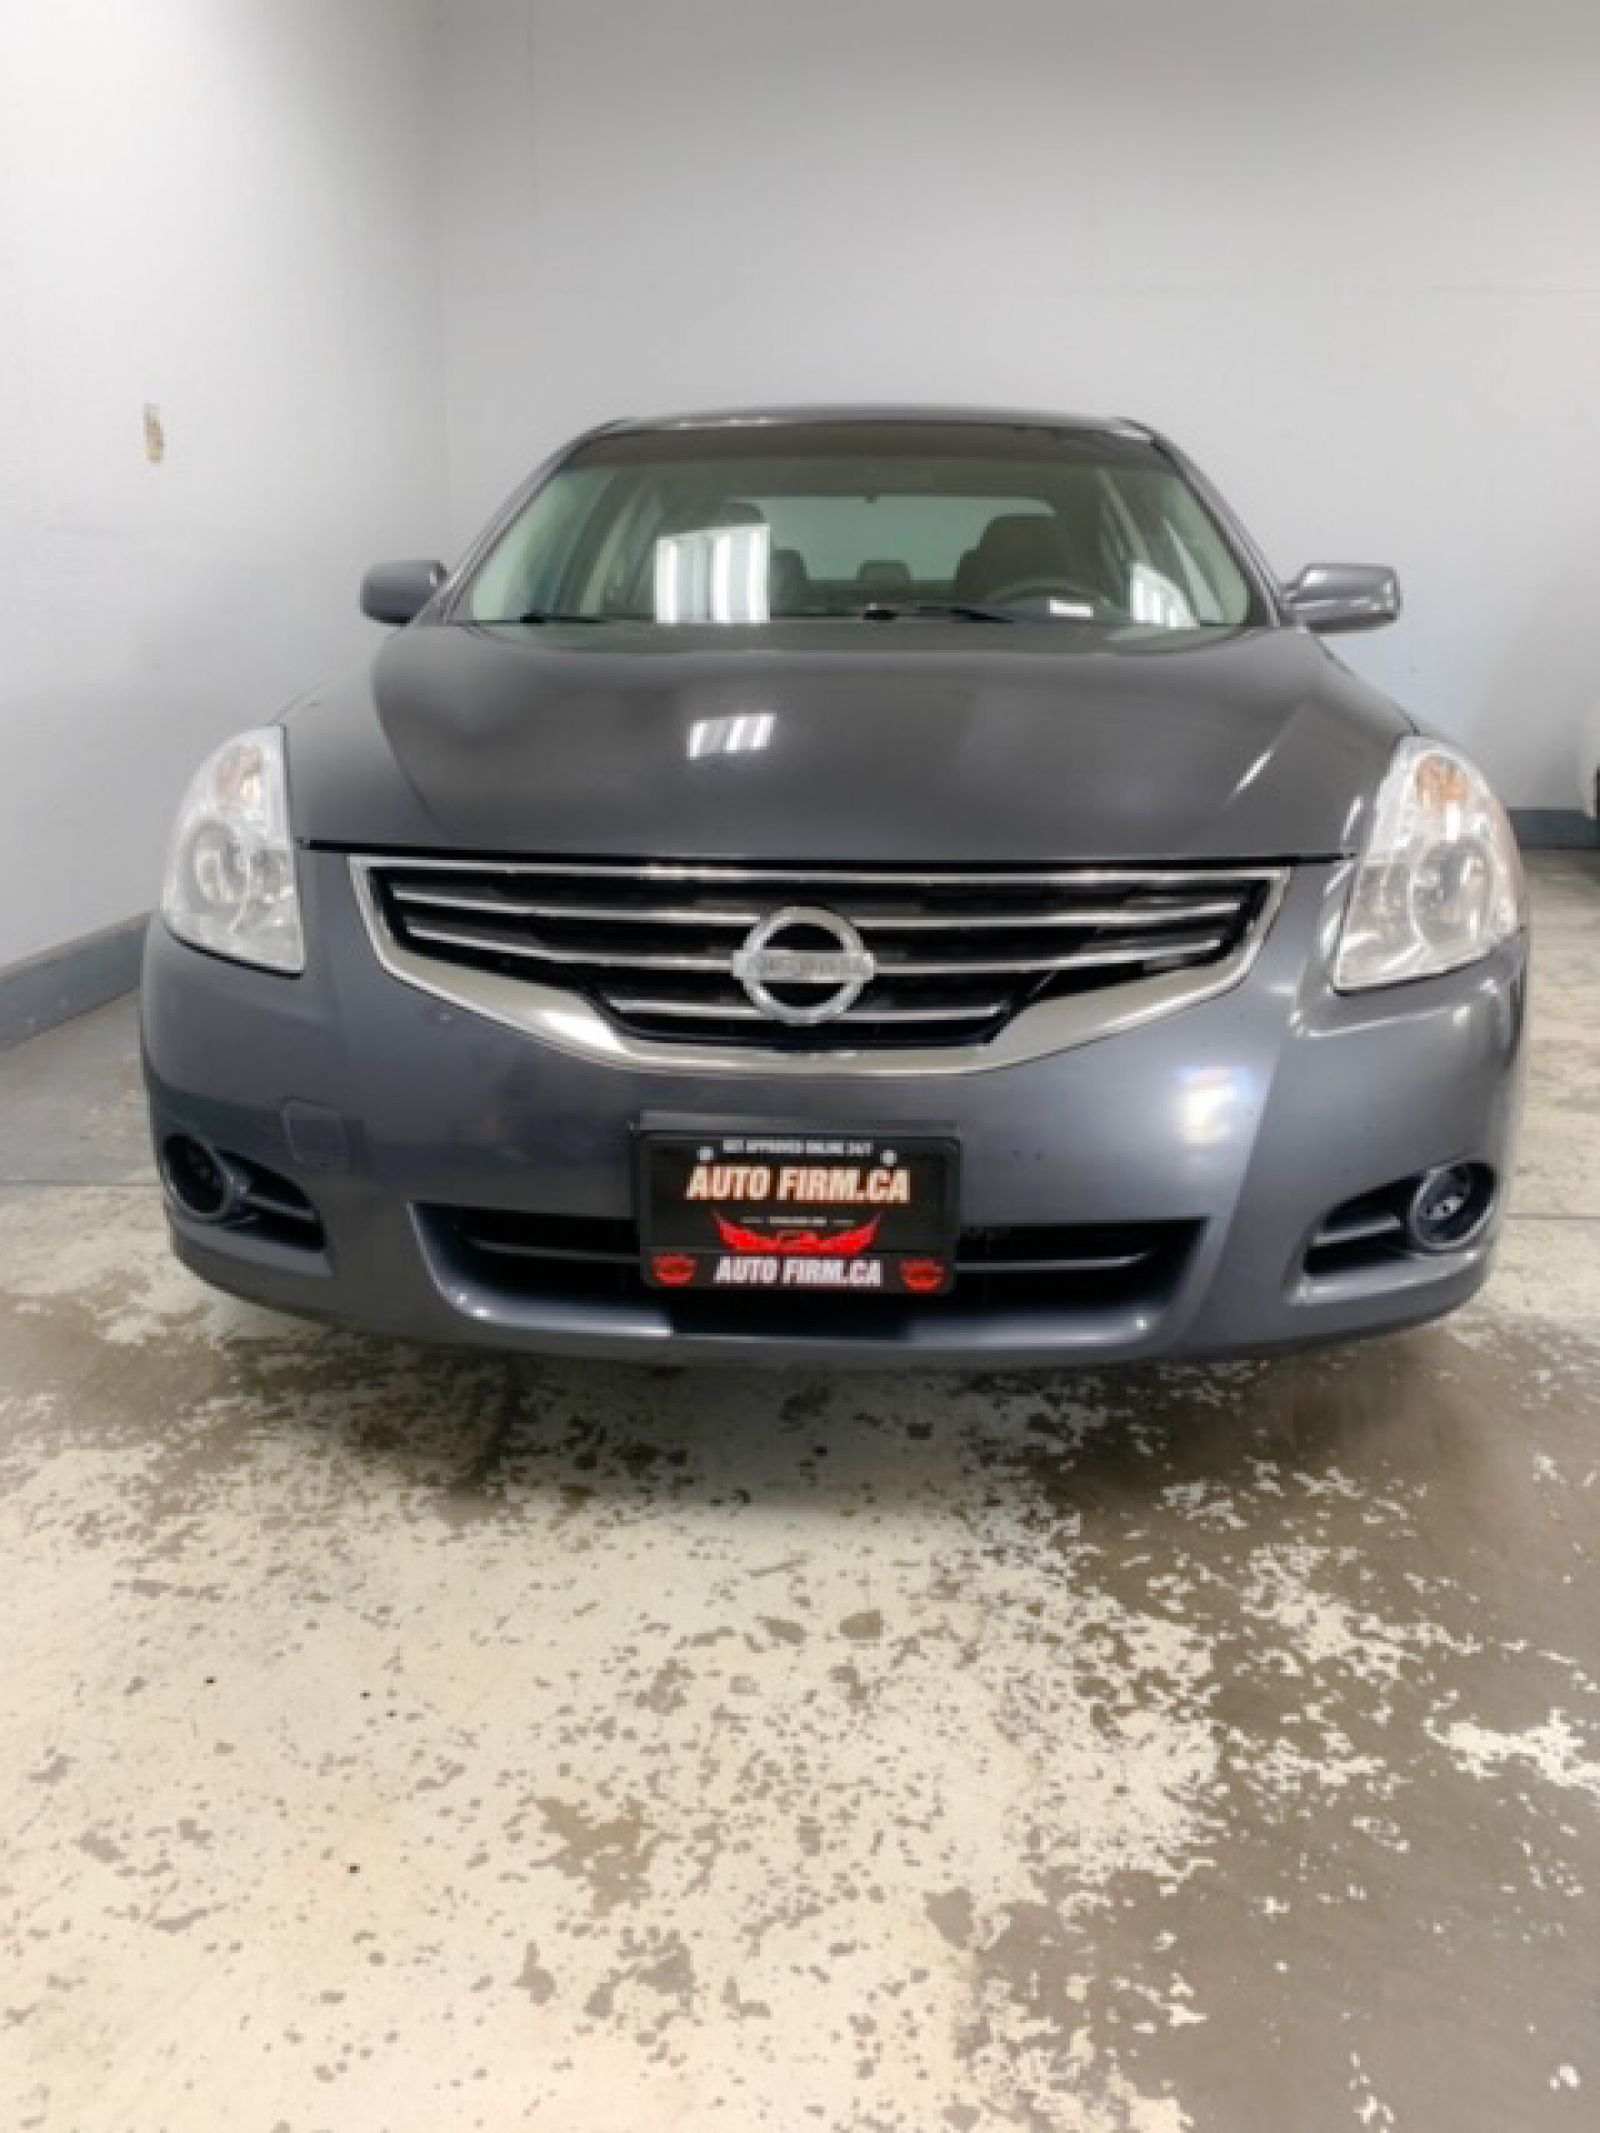 2012 Nissan Altima Main